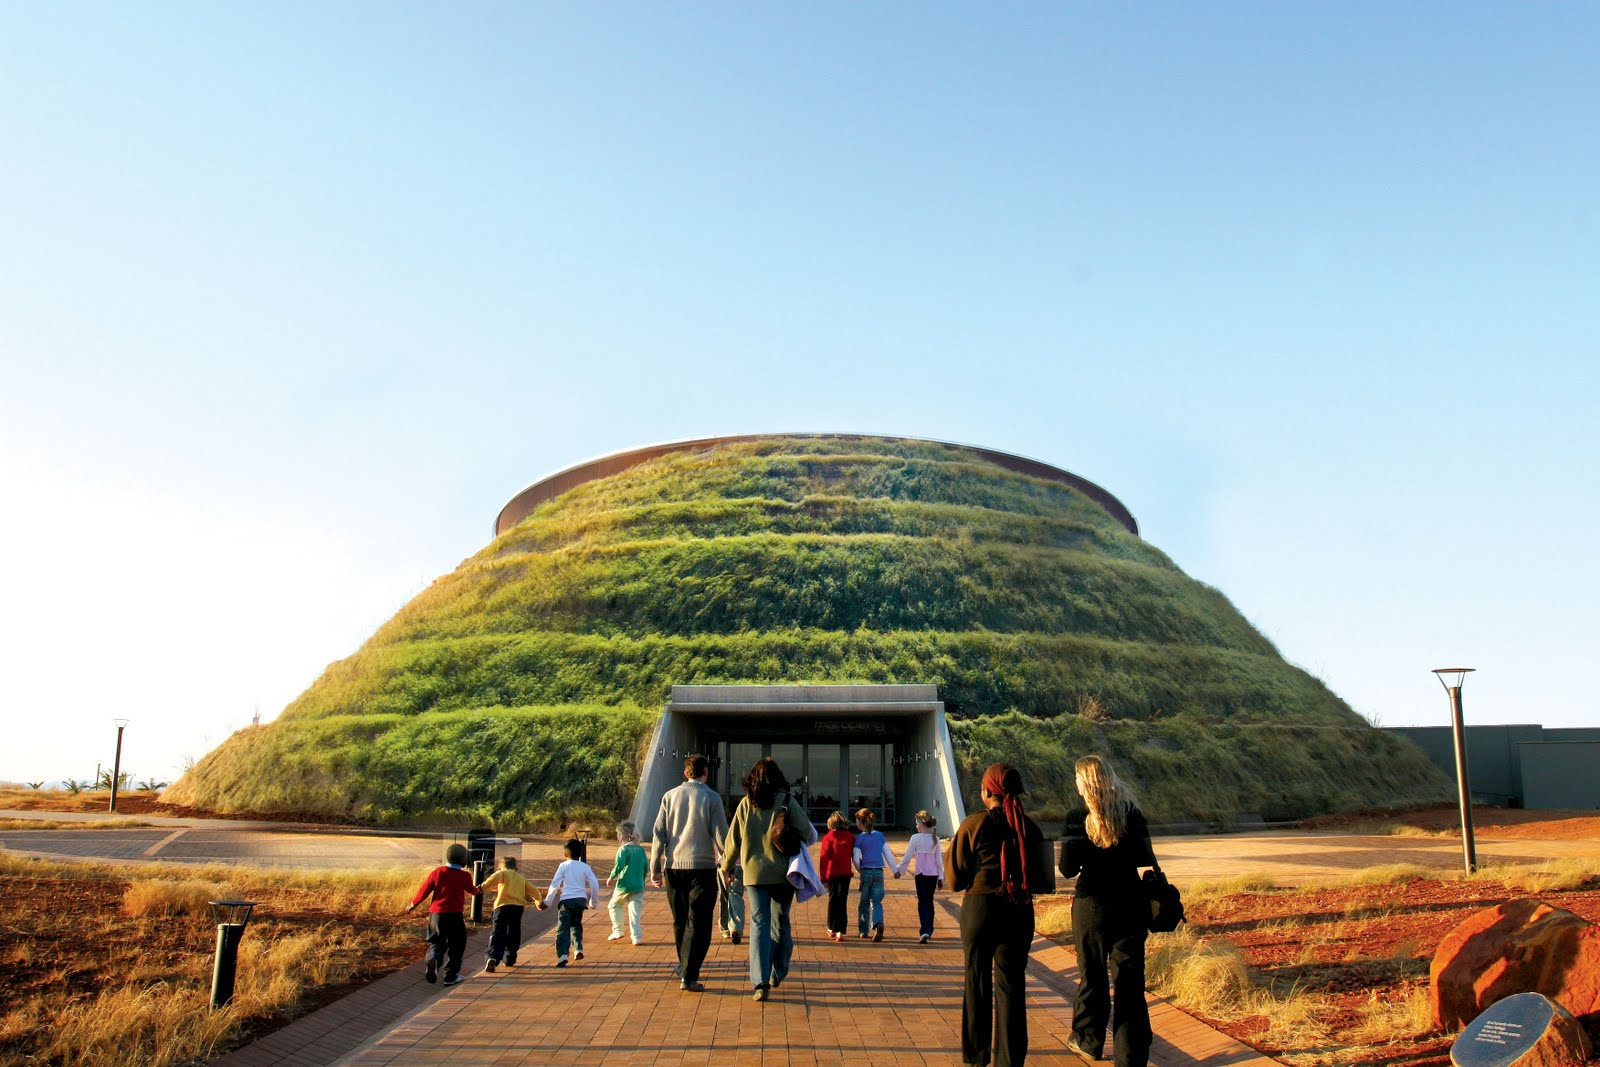 Maropeng: the tour - starting with an underground river-ride... starts under this mound.